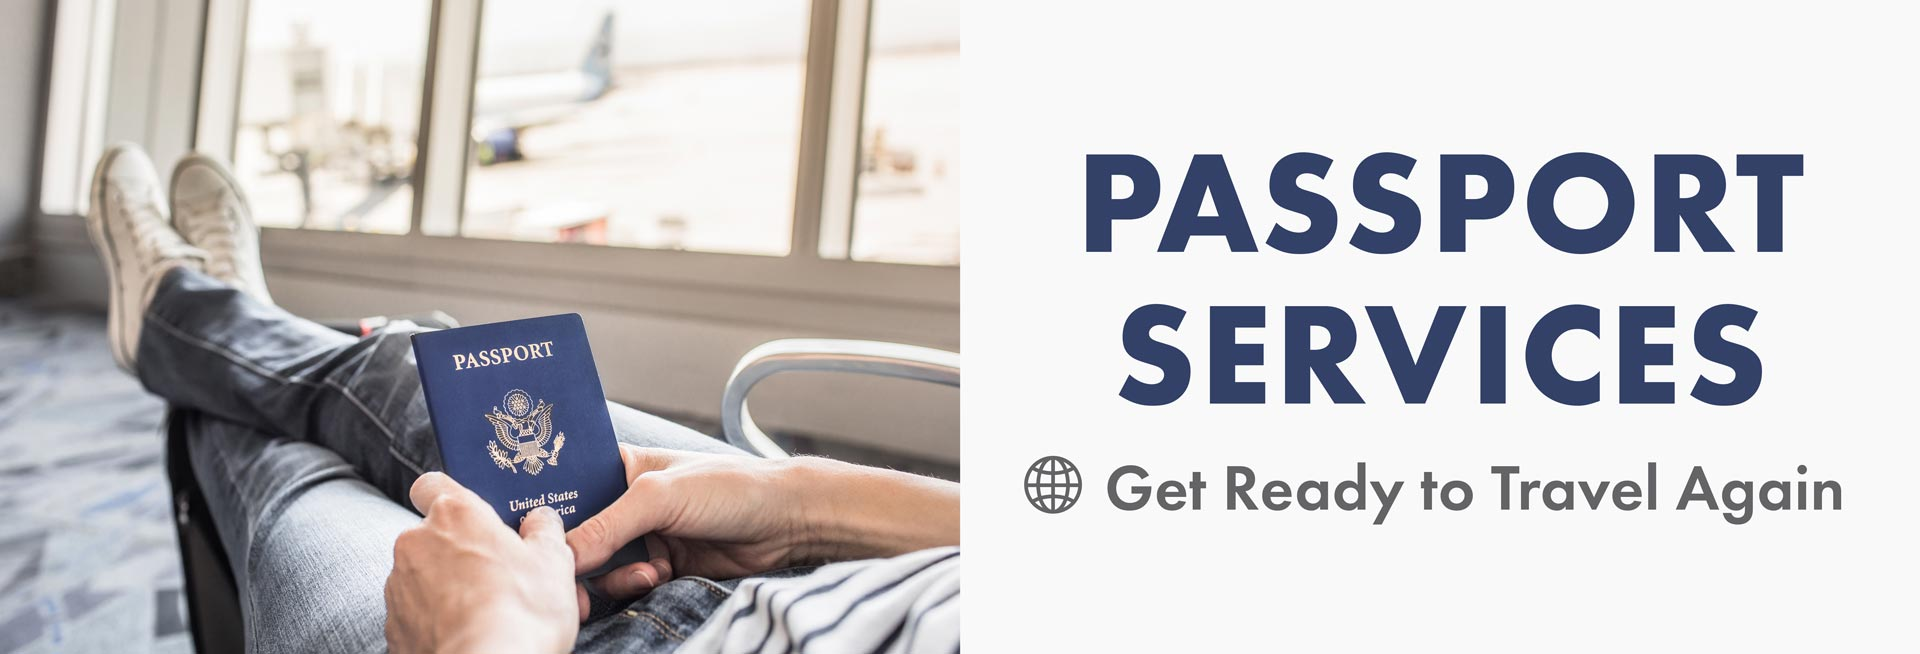 Passport Services - Get Ready to Travel Again